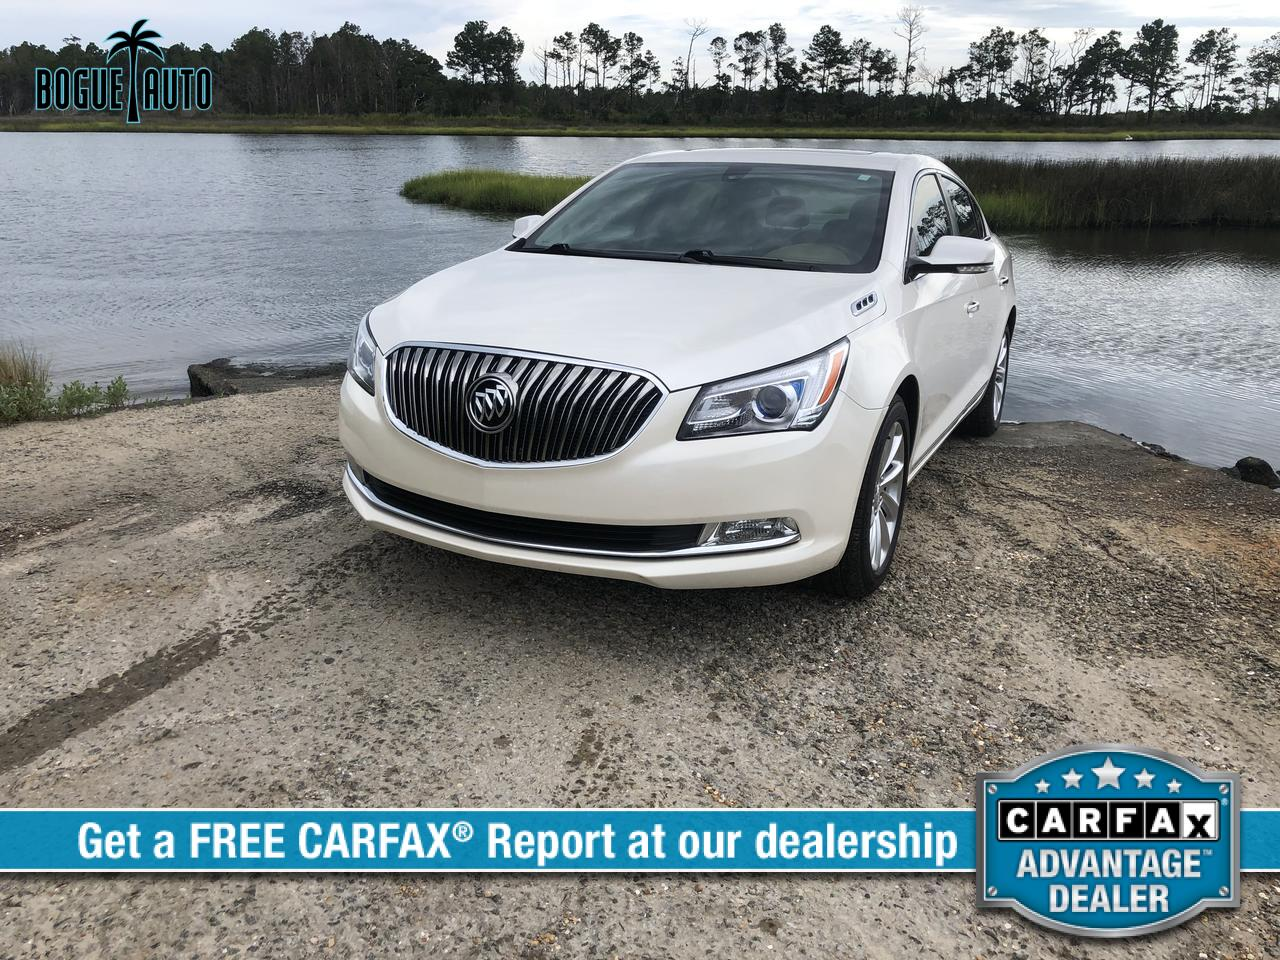 2014 BUICK LACROSSE LEATHER Newport NC